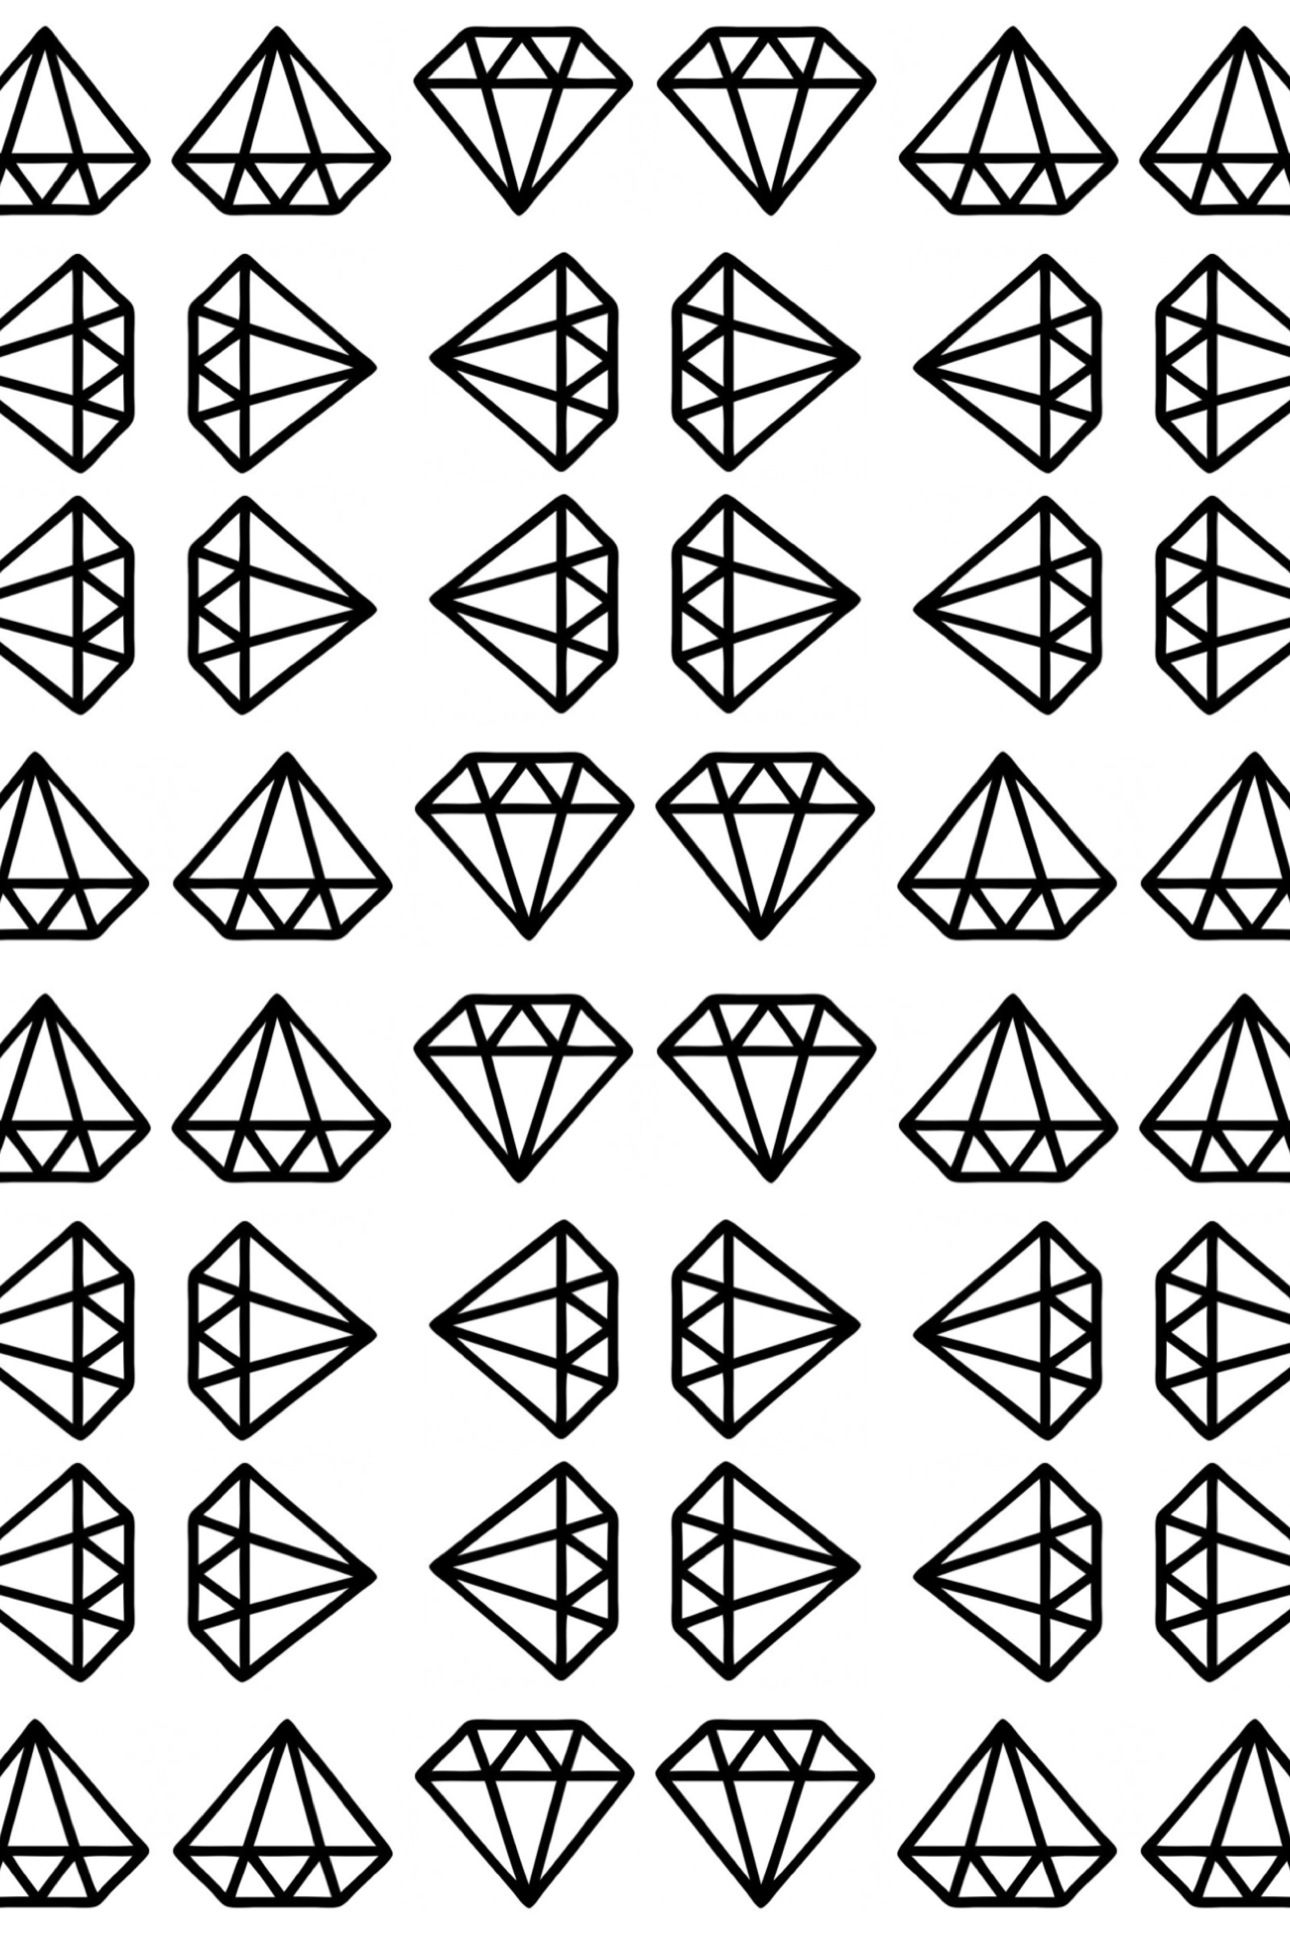 Really Love The Old School 2D Diamond D Tattoos I Want Ideas And Designs